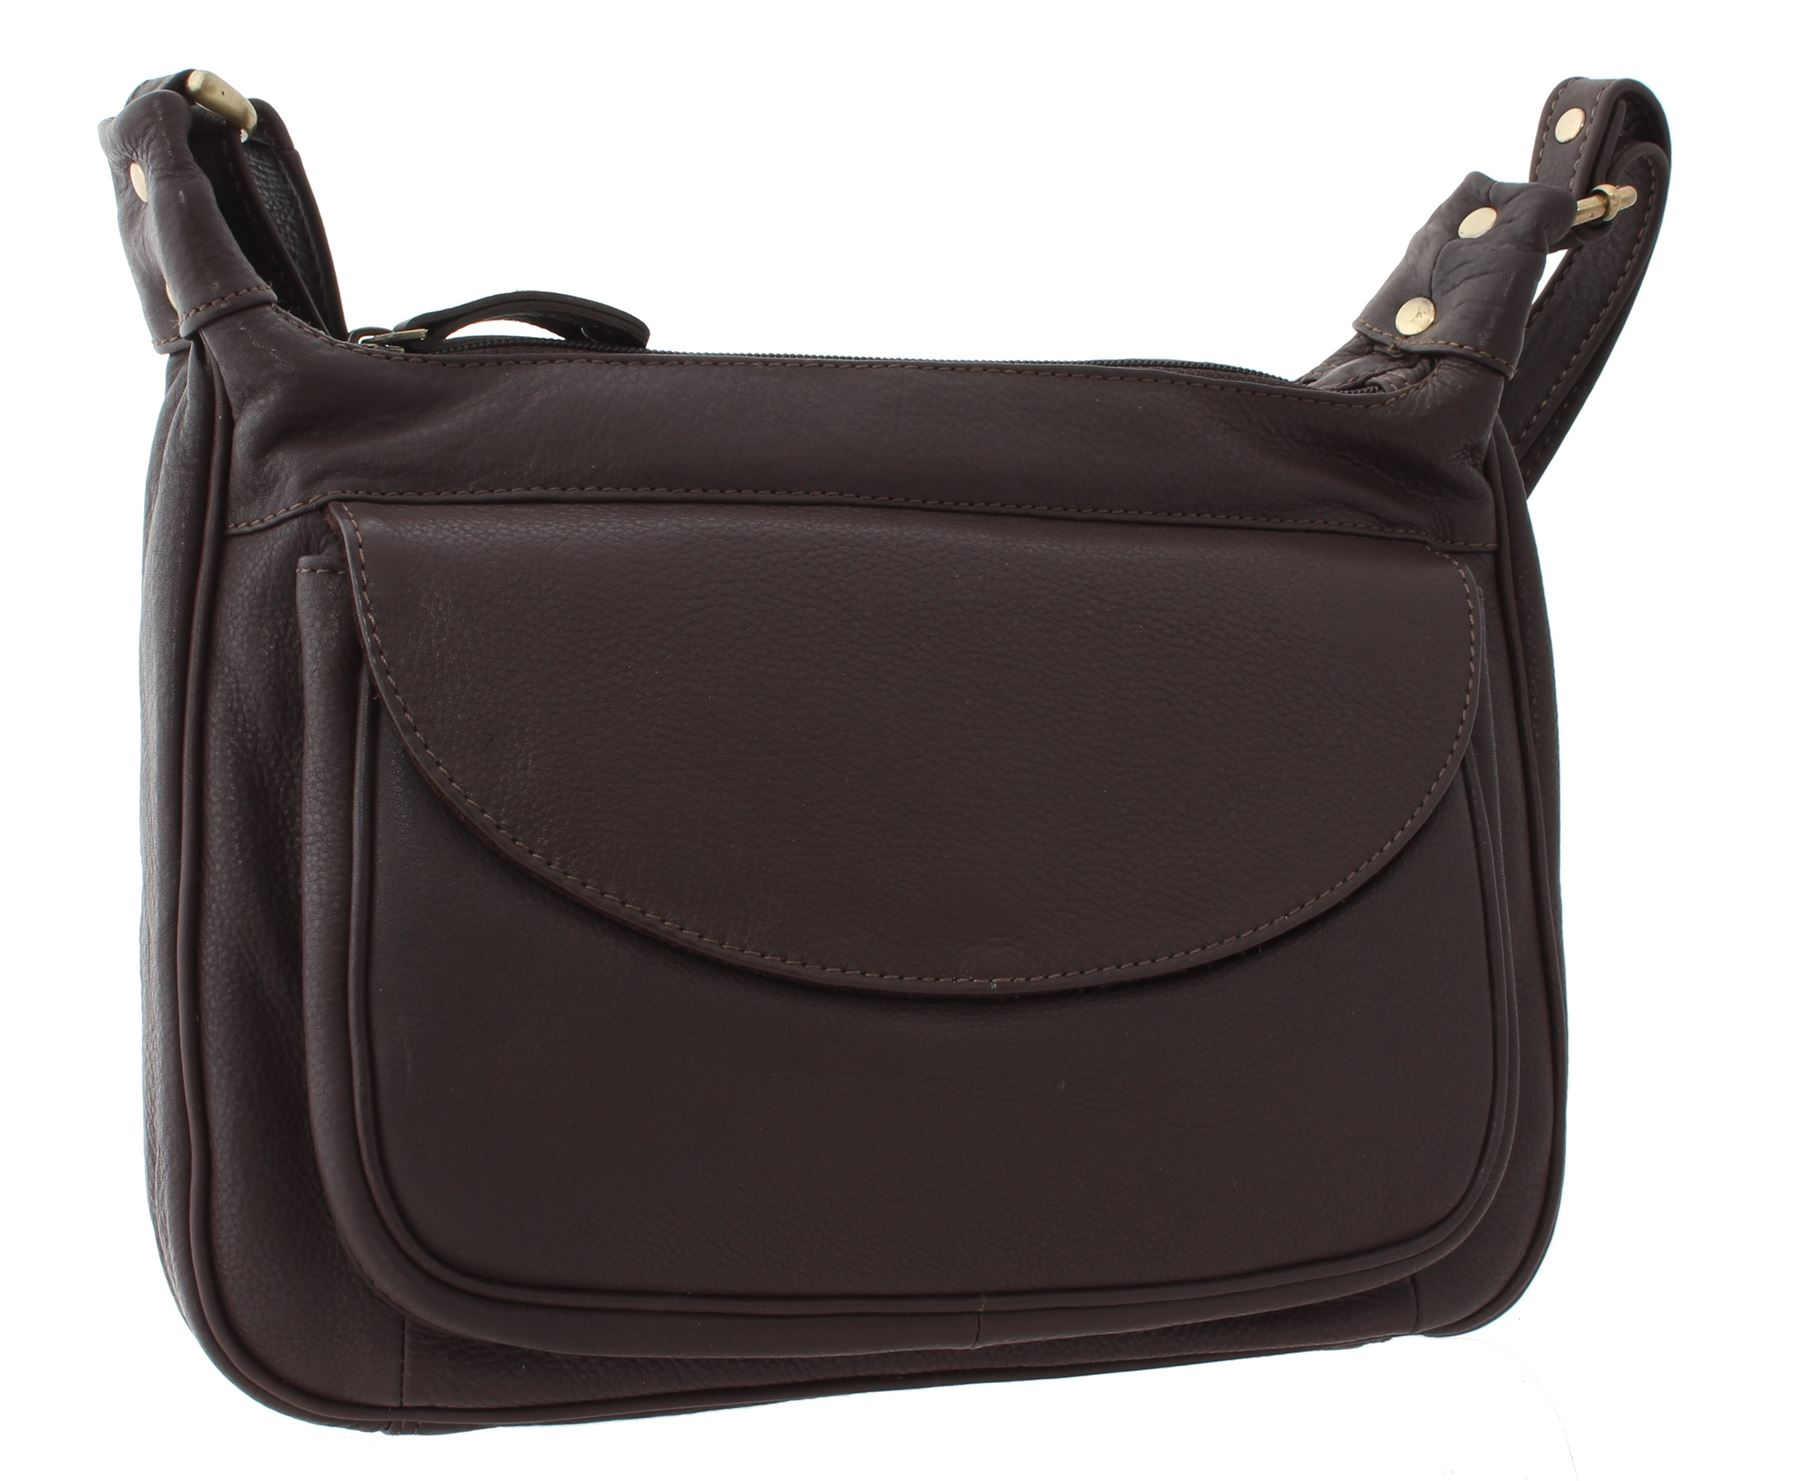 Bolla Bags Wimborne Collection Pilford Single Strap a7cb387508e18